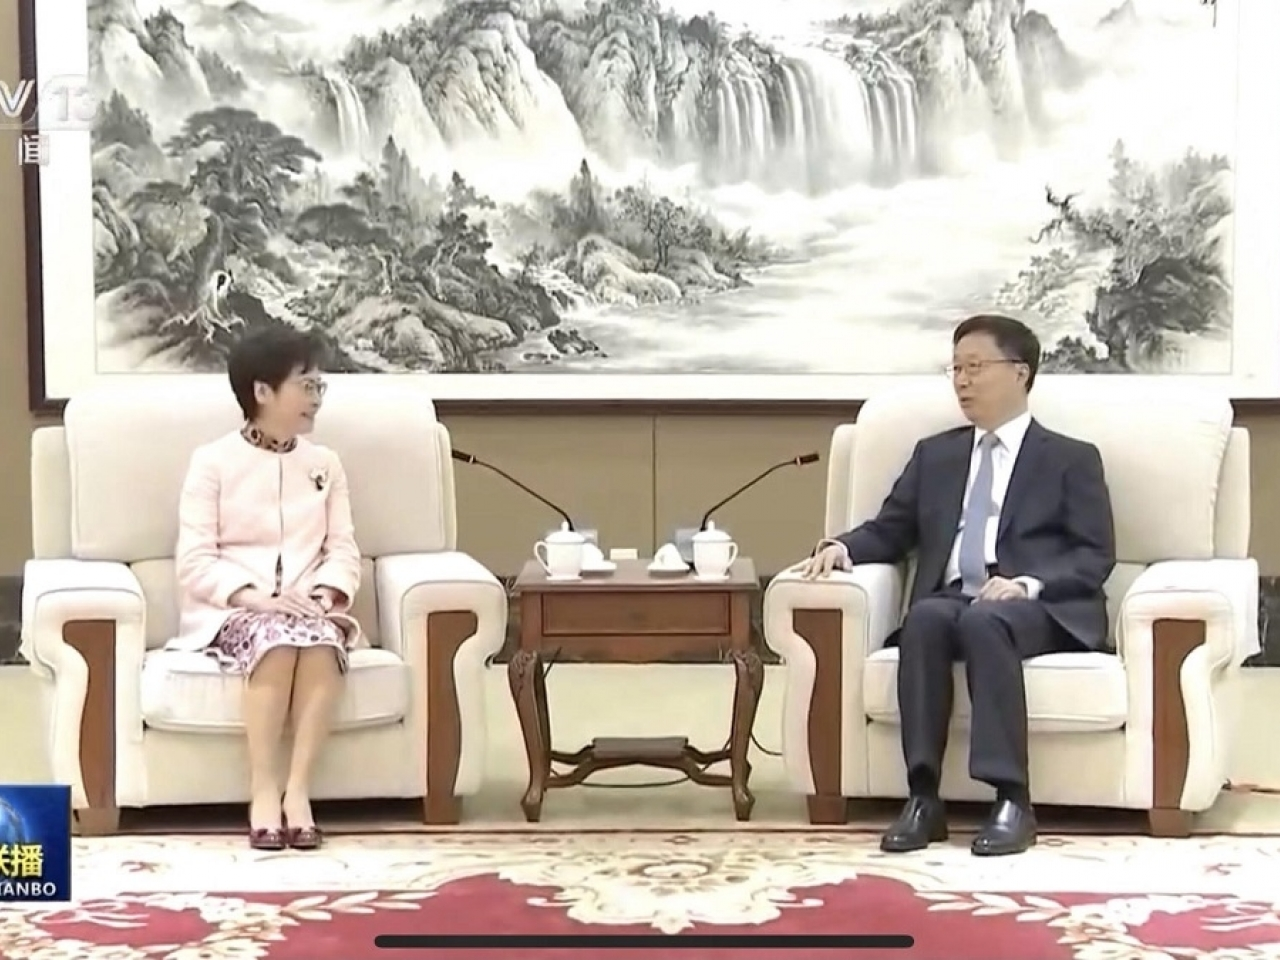 The Chief Executive, Carrie Lam (left), met with the Vice Premier Han Zheng ahead of the Election Committee elections. Photo: supplied